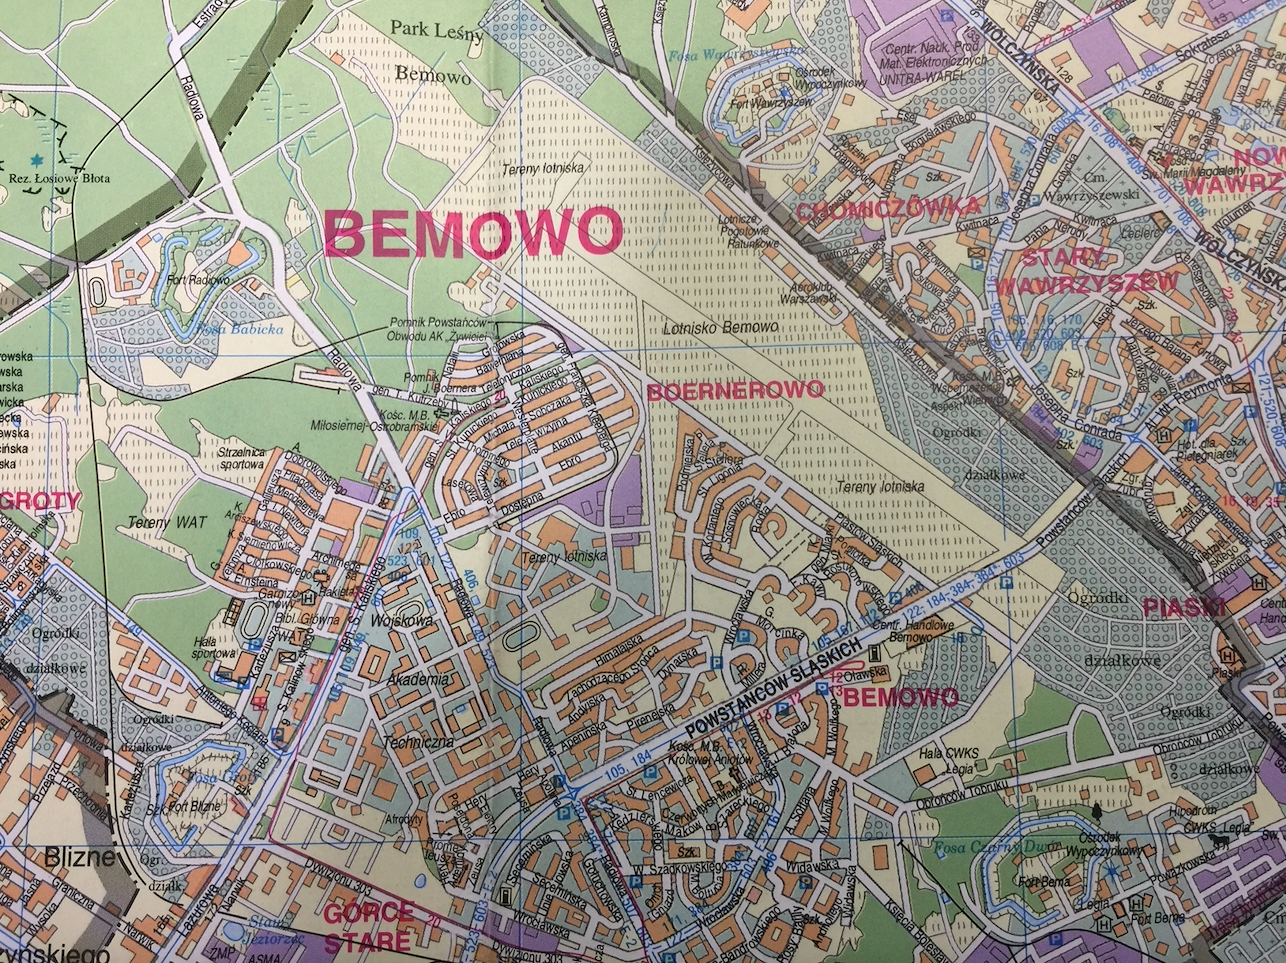 Bemowo airport on the map. 1998 year. Photo of LAC